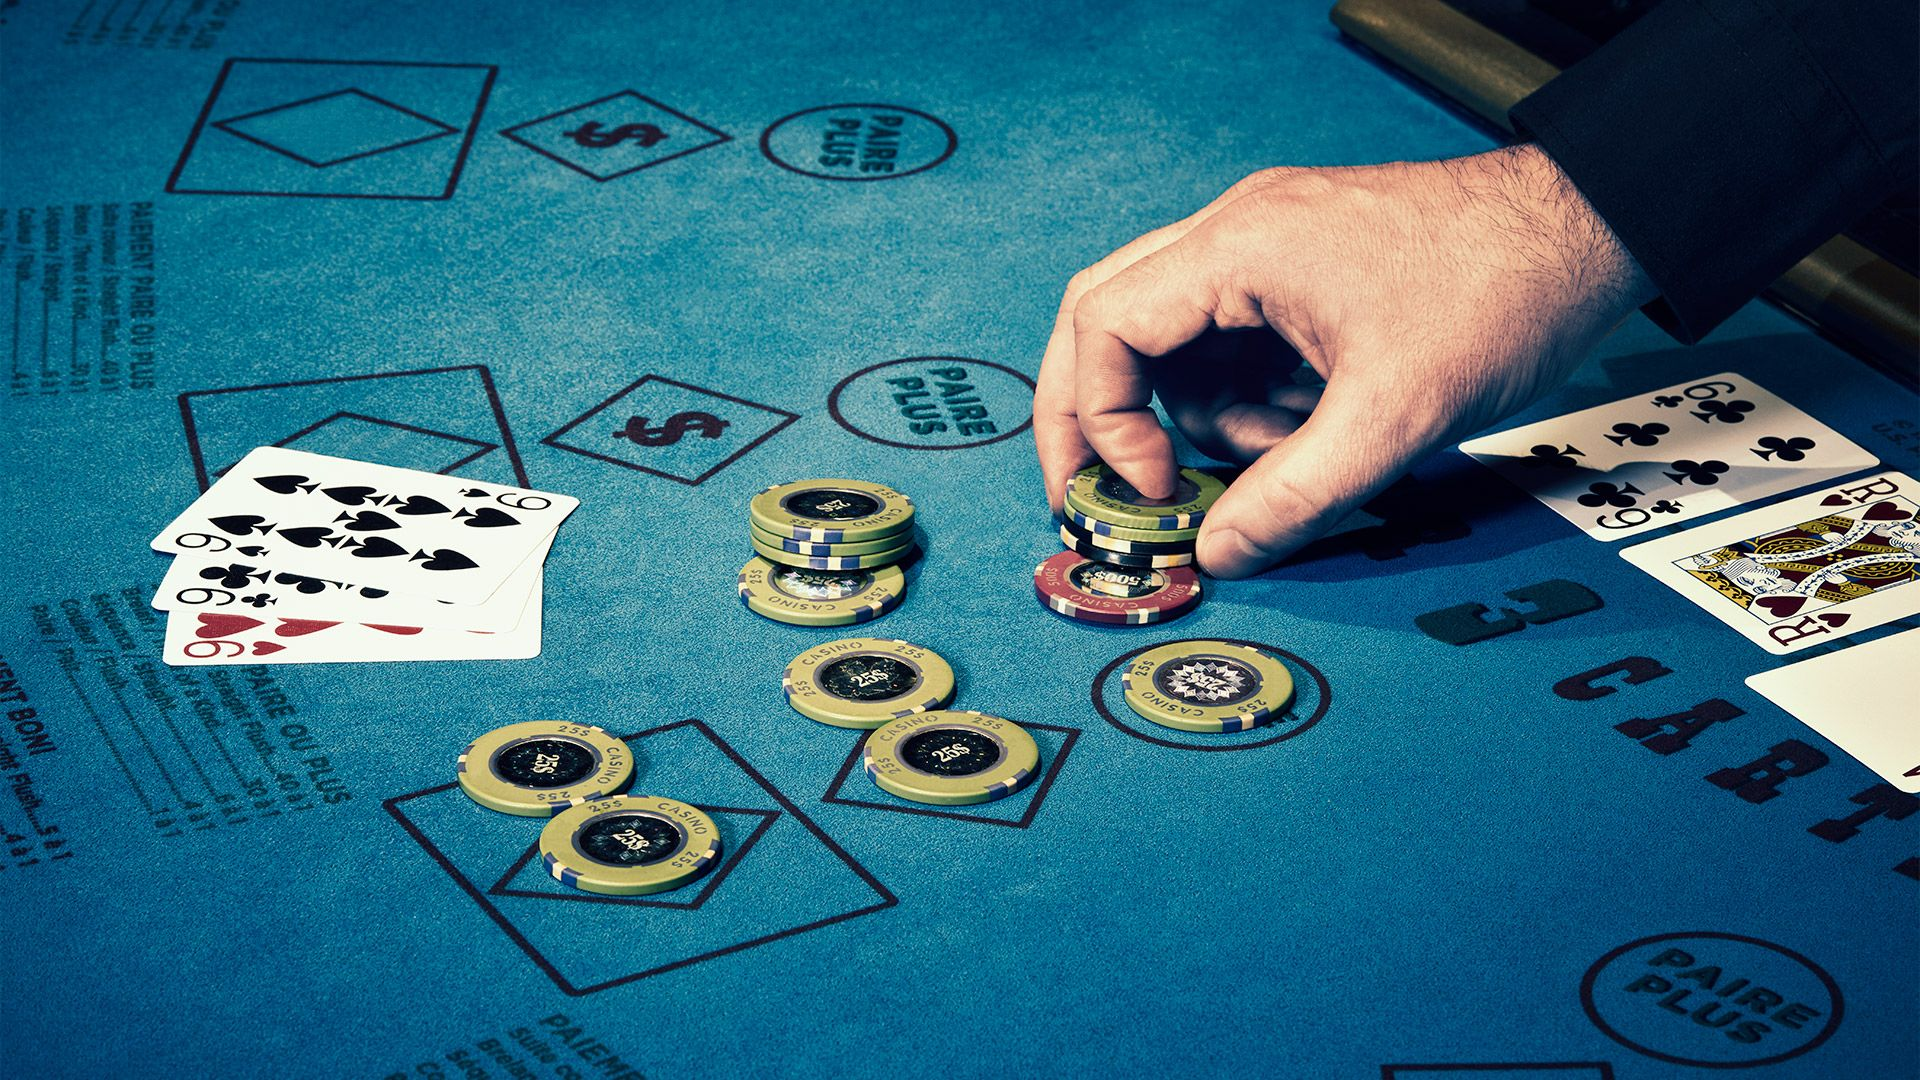 How to play craps pdf